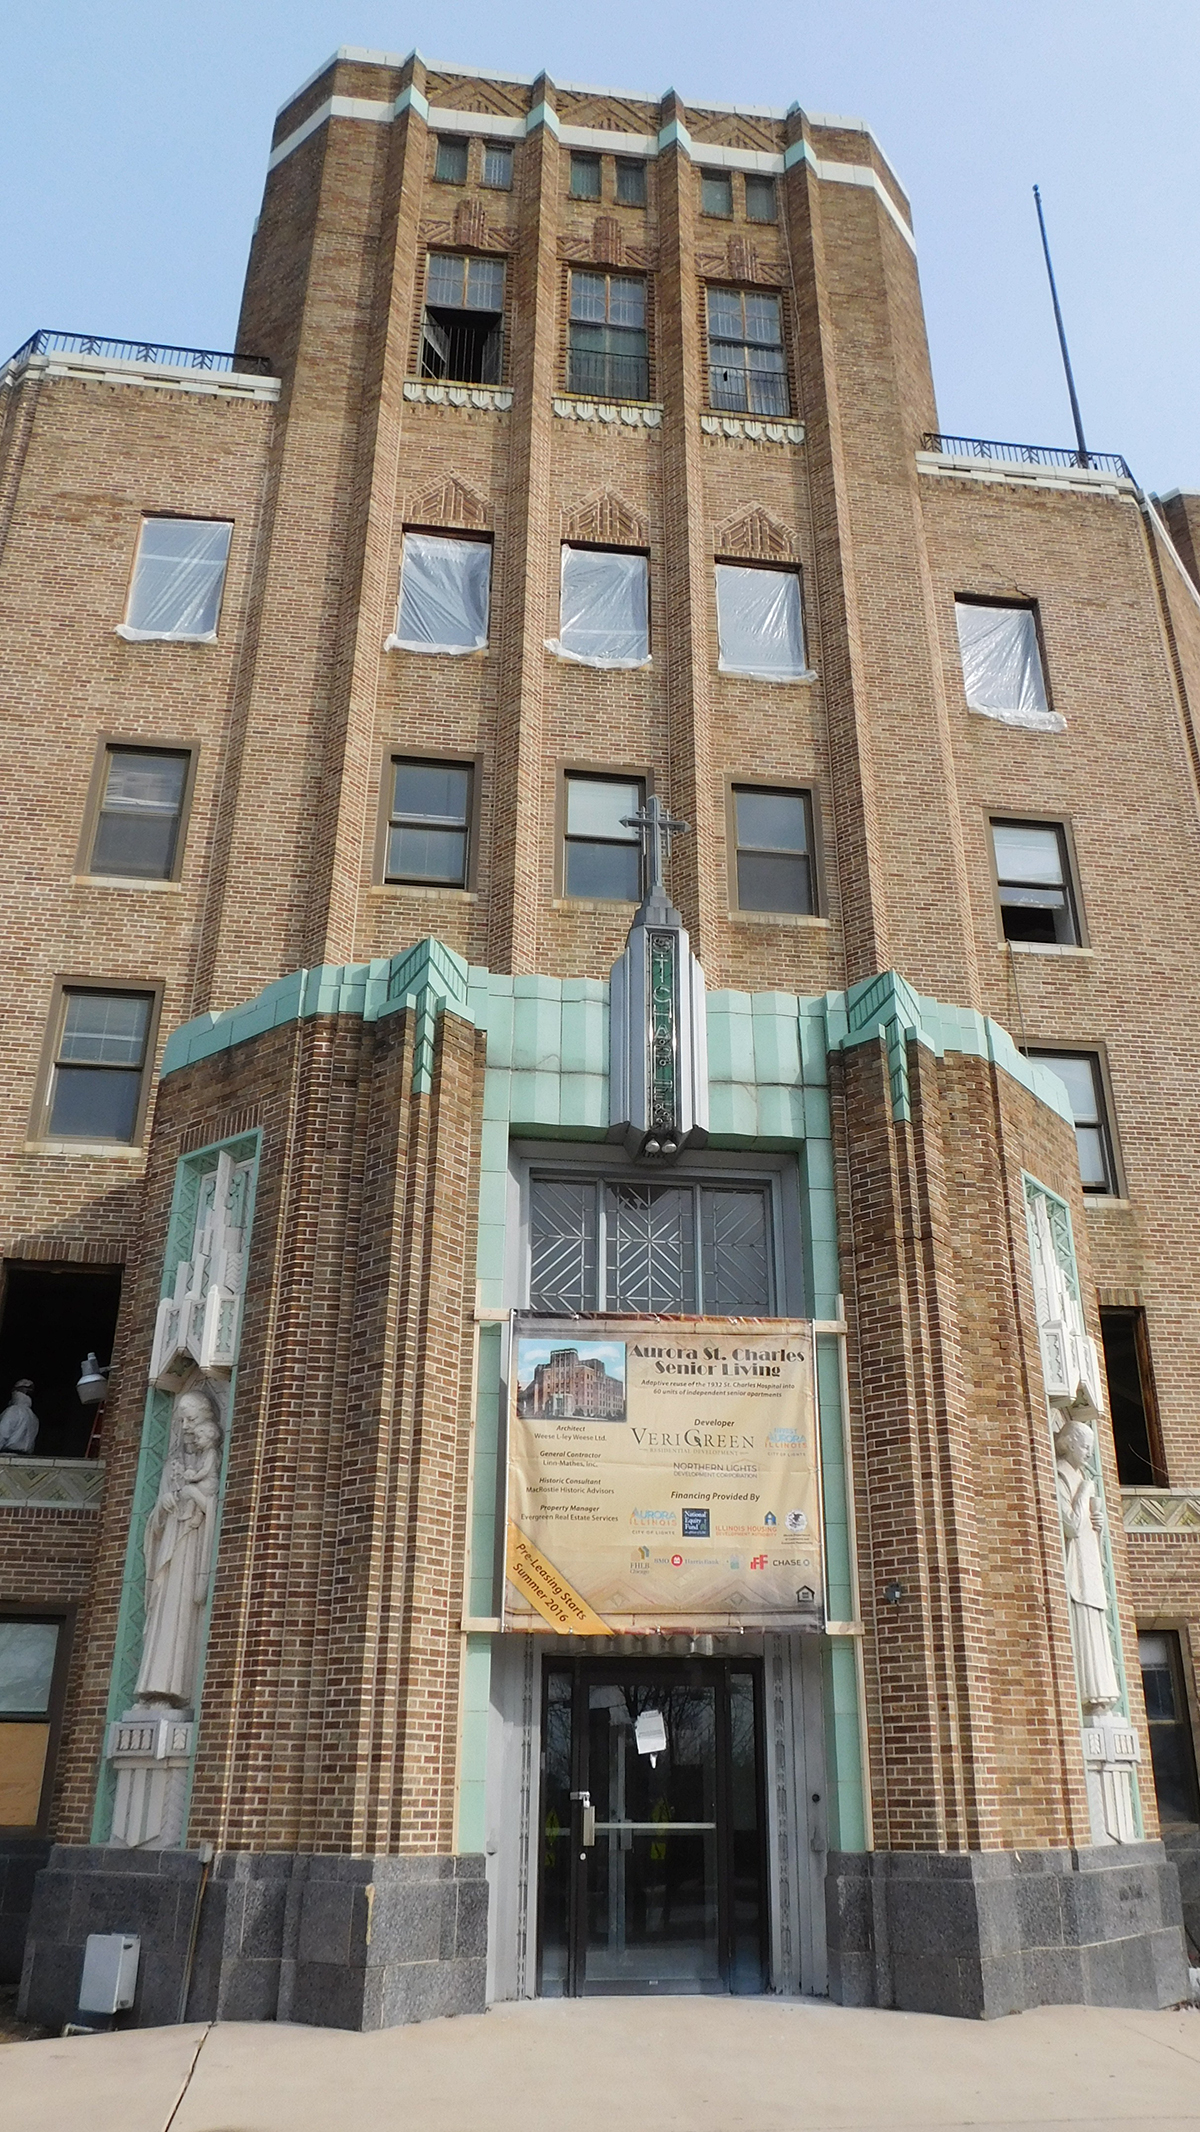 St Charles Hospital being converted into senior living units